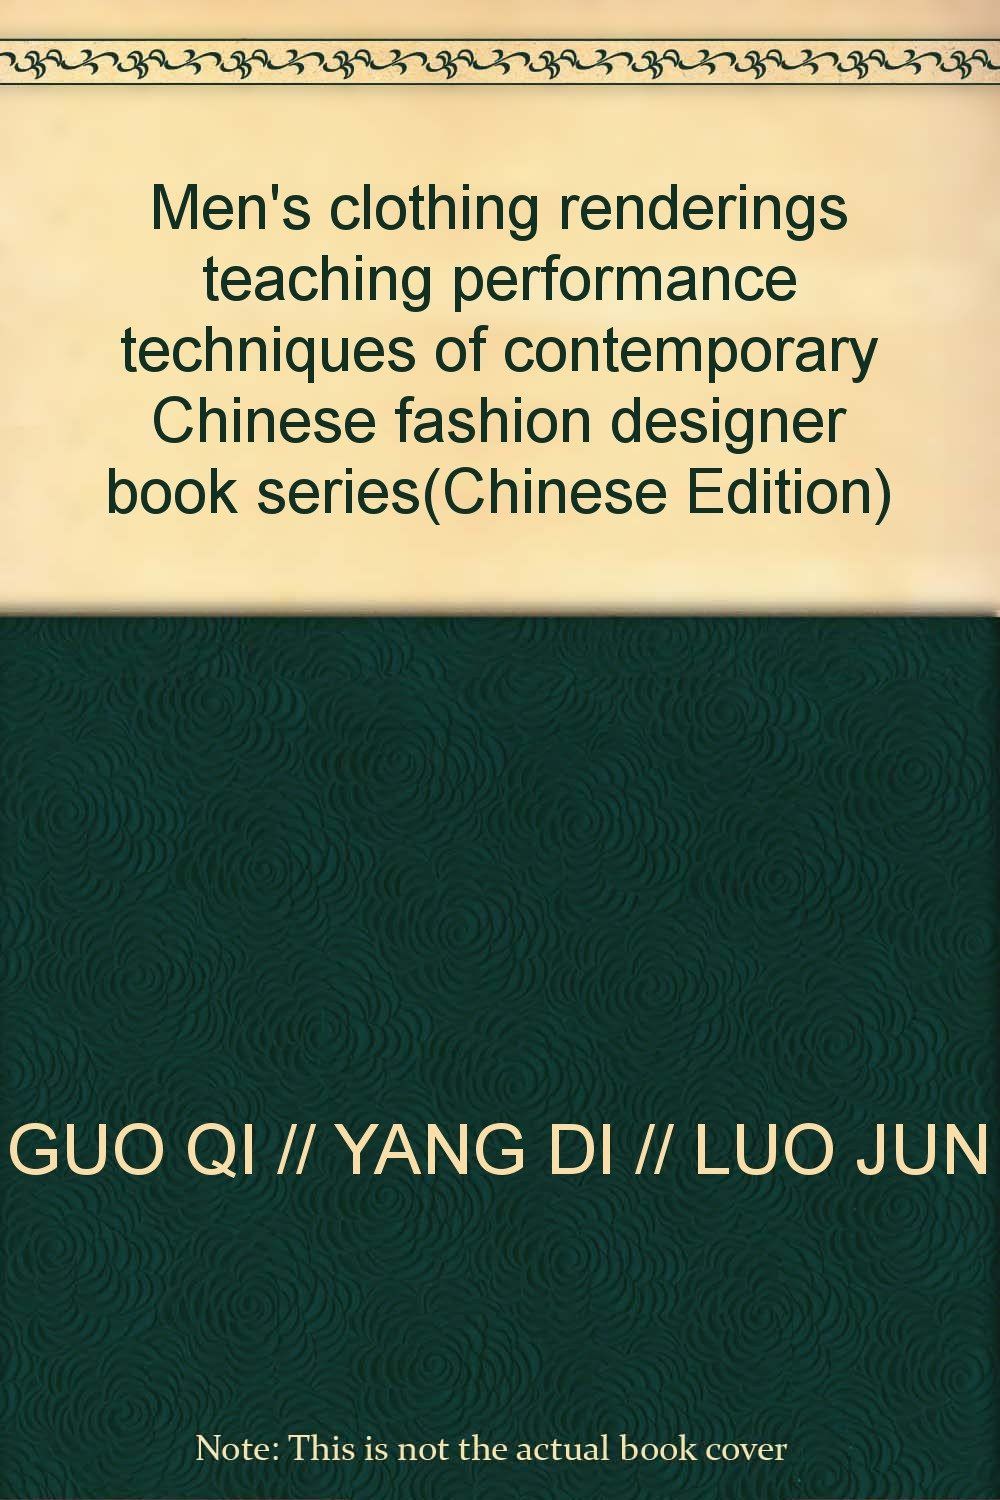 Men's clothing renderings teaching performance techniques of contemporary Chinese fashion designer book series(Chinese Edition) pdf